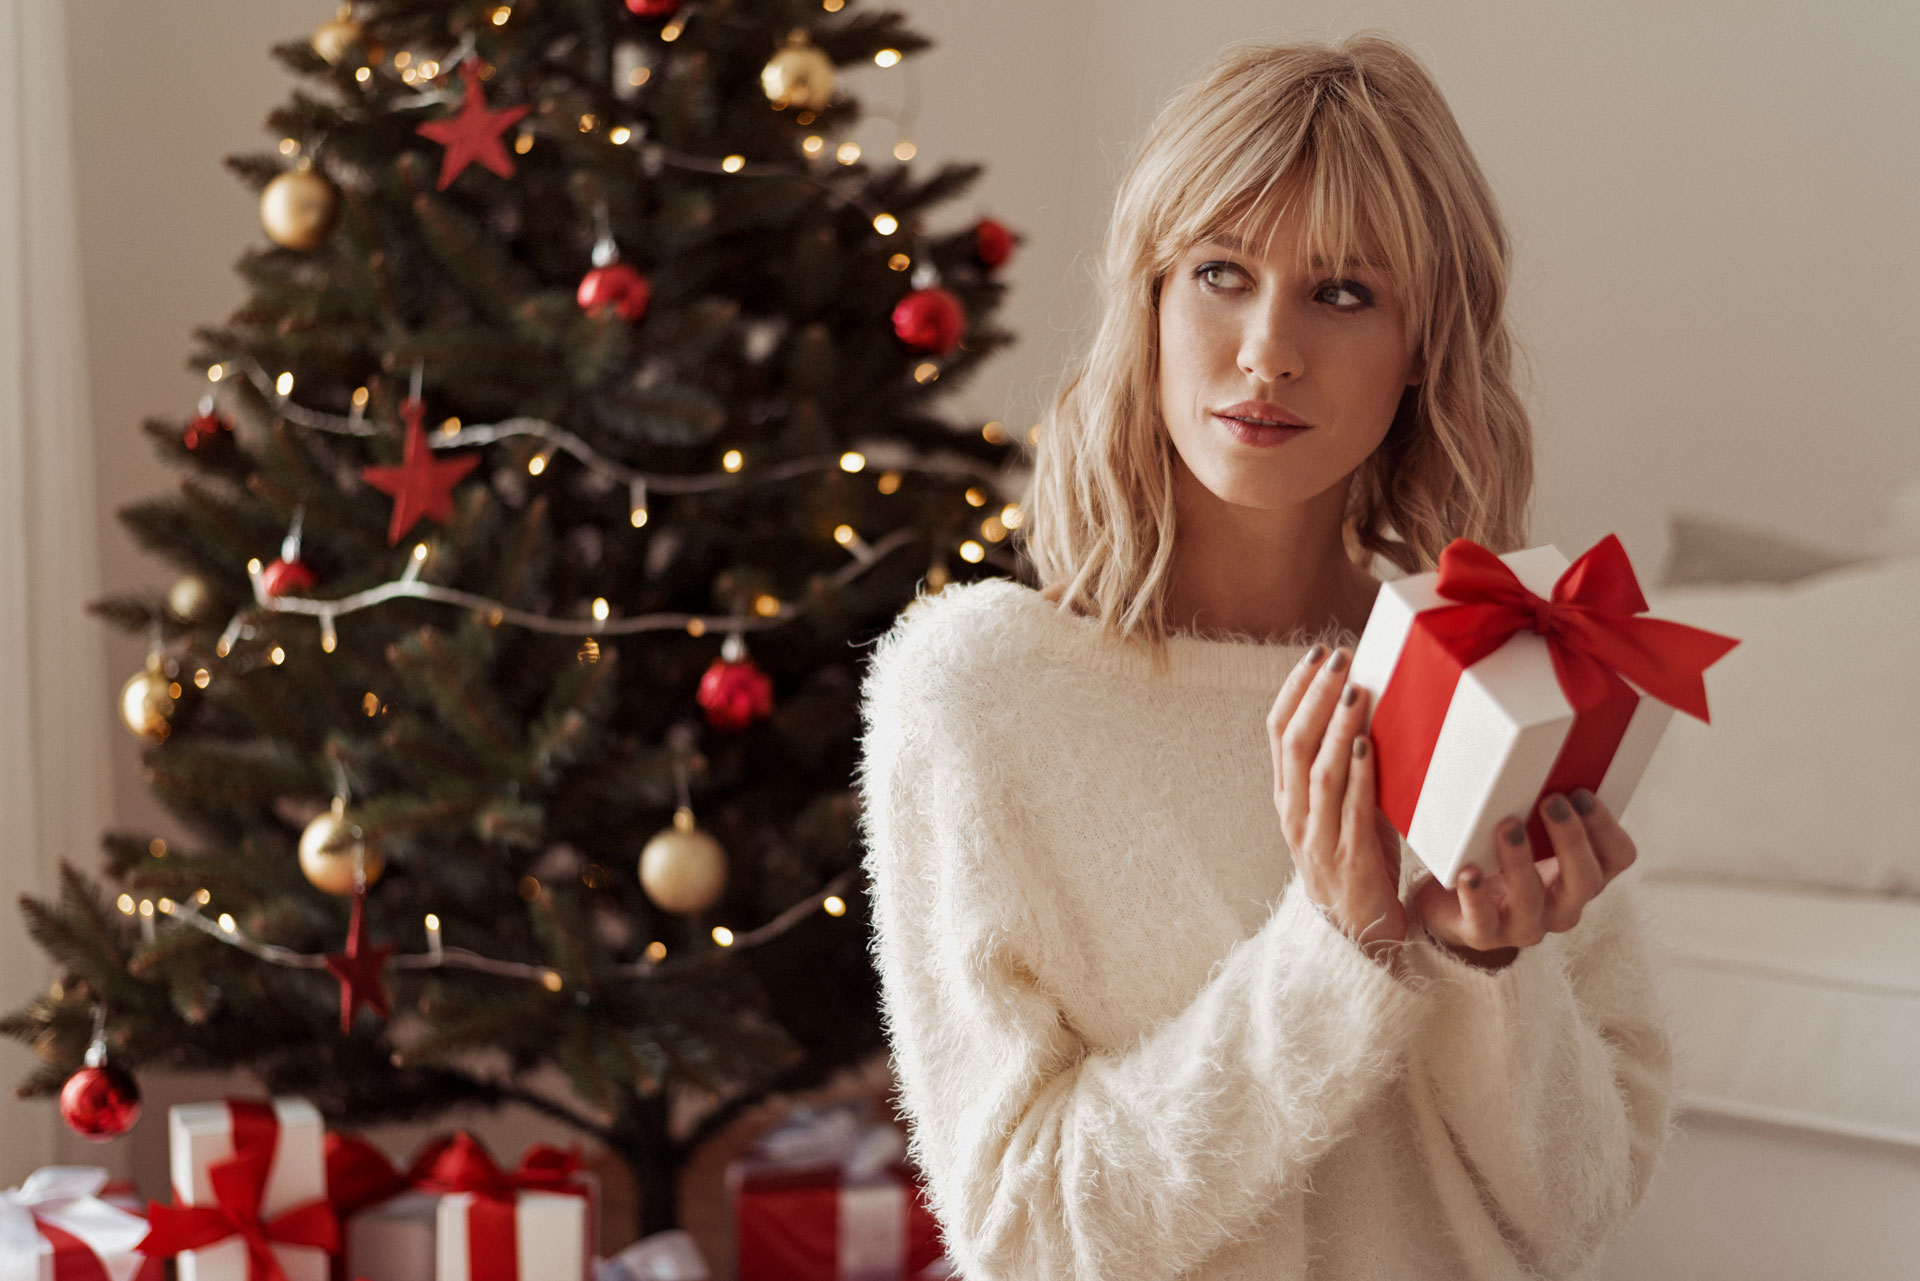 Best Christmas Gifts for Women